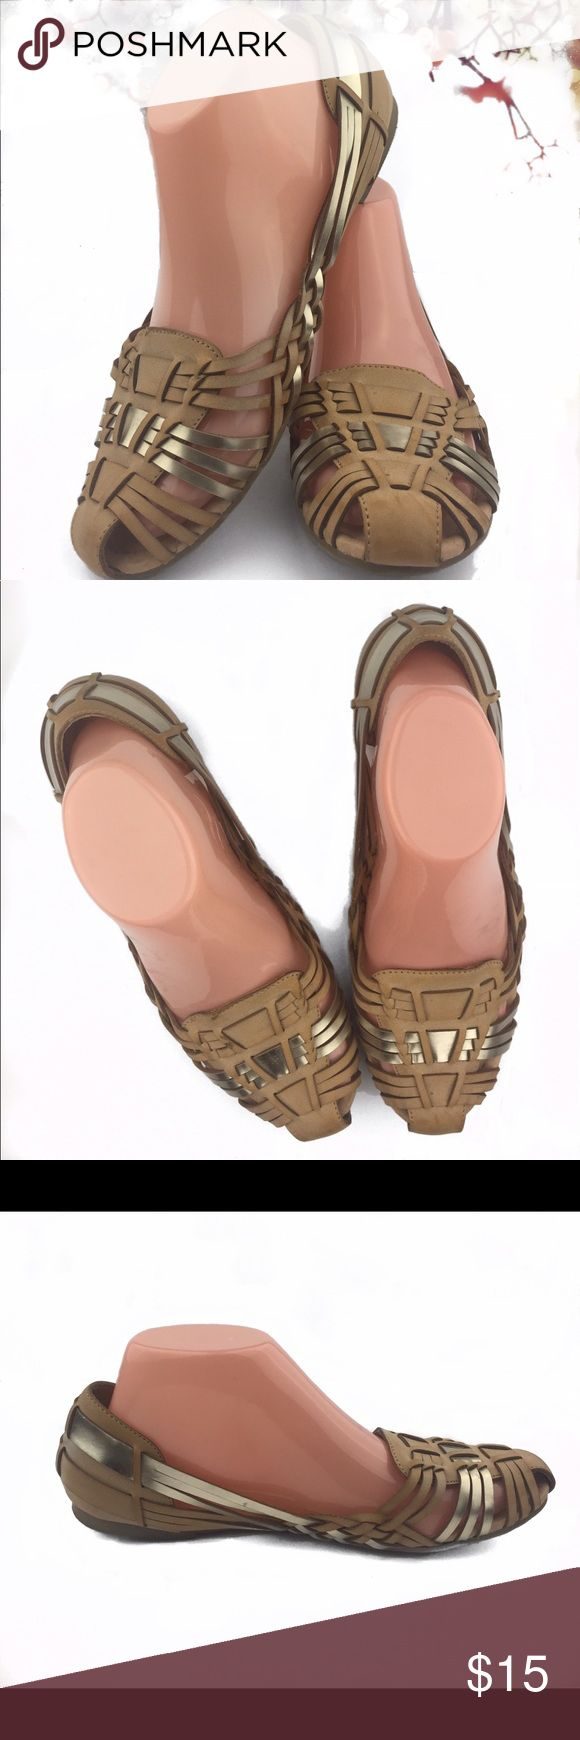 Report Womens Yannick Breezy Slip-On Sandal 8.5 Women's Report brand sandal in open weave for breezy summer days. In tan and metallic silver color, size 8.5, and lightly used condition. Report Shoes Sandals